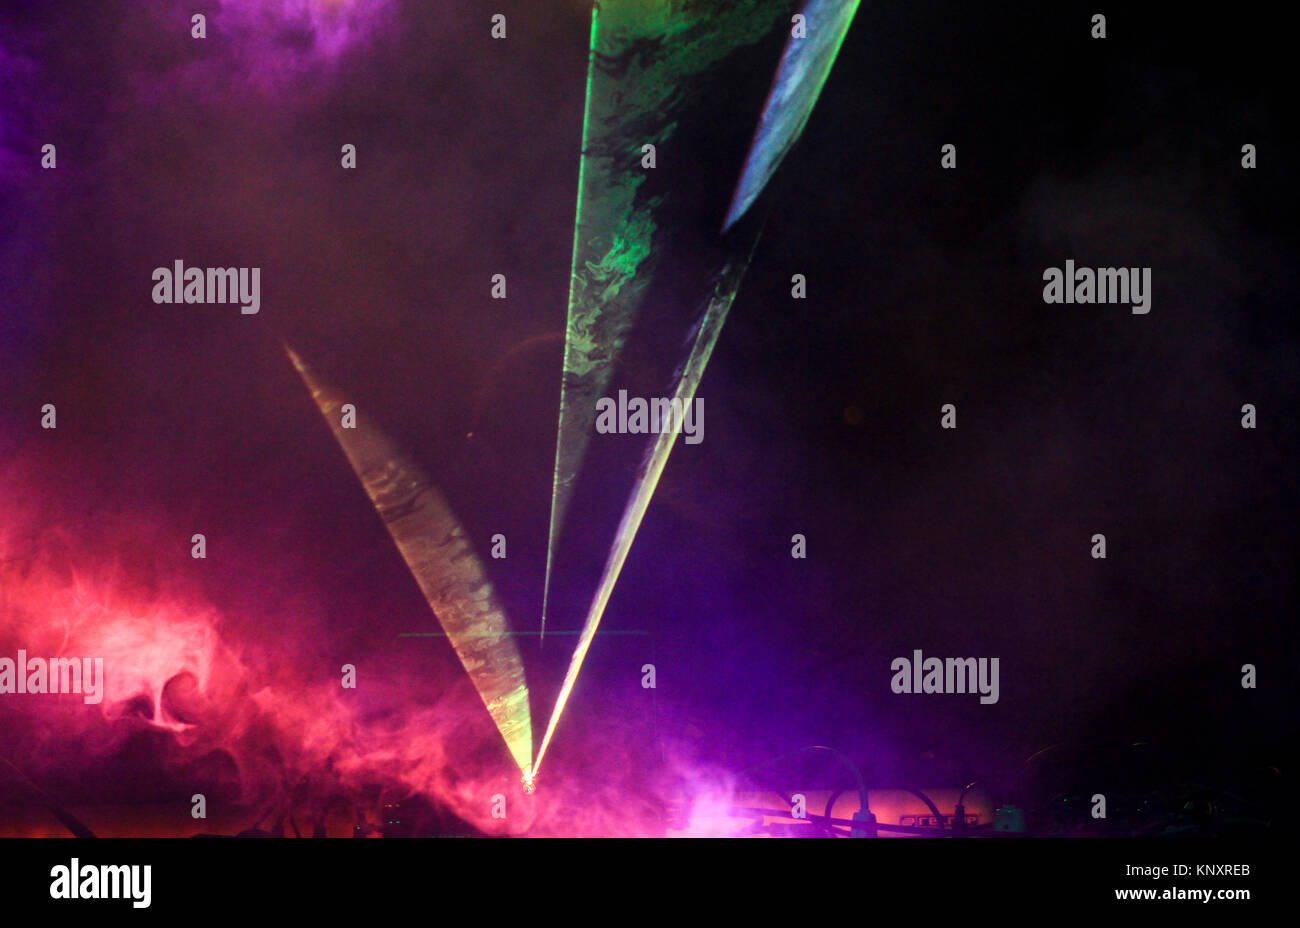 Many bands of light of many colors. - Stock Image